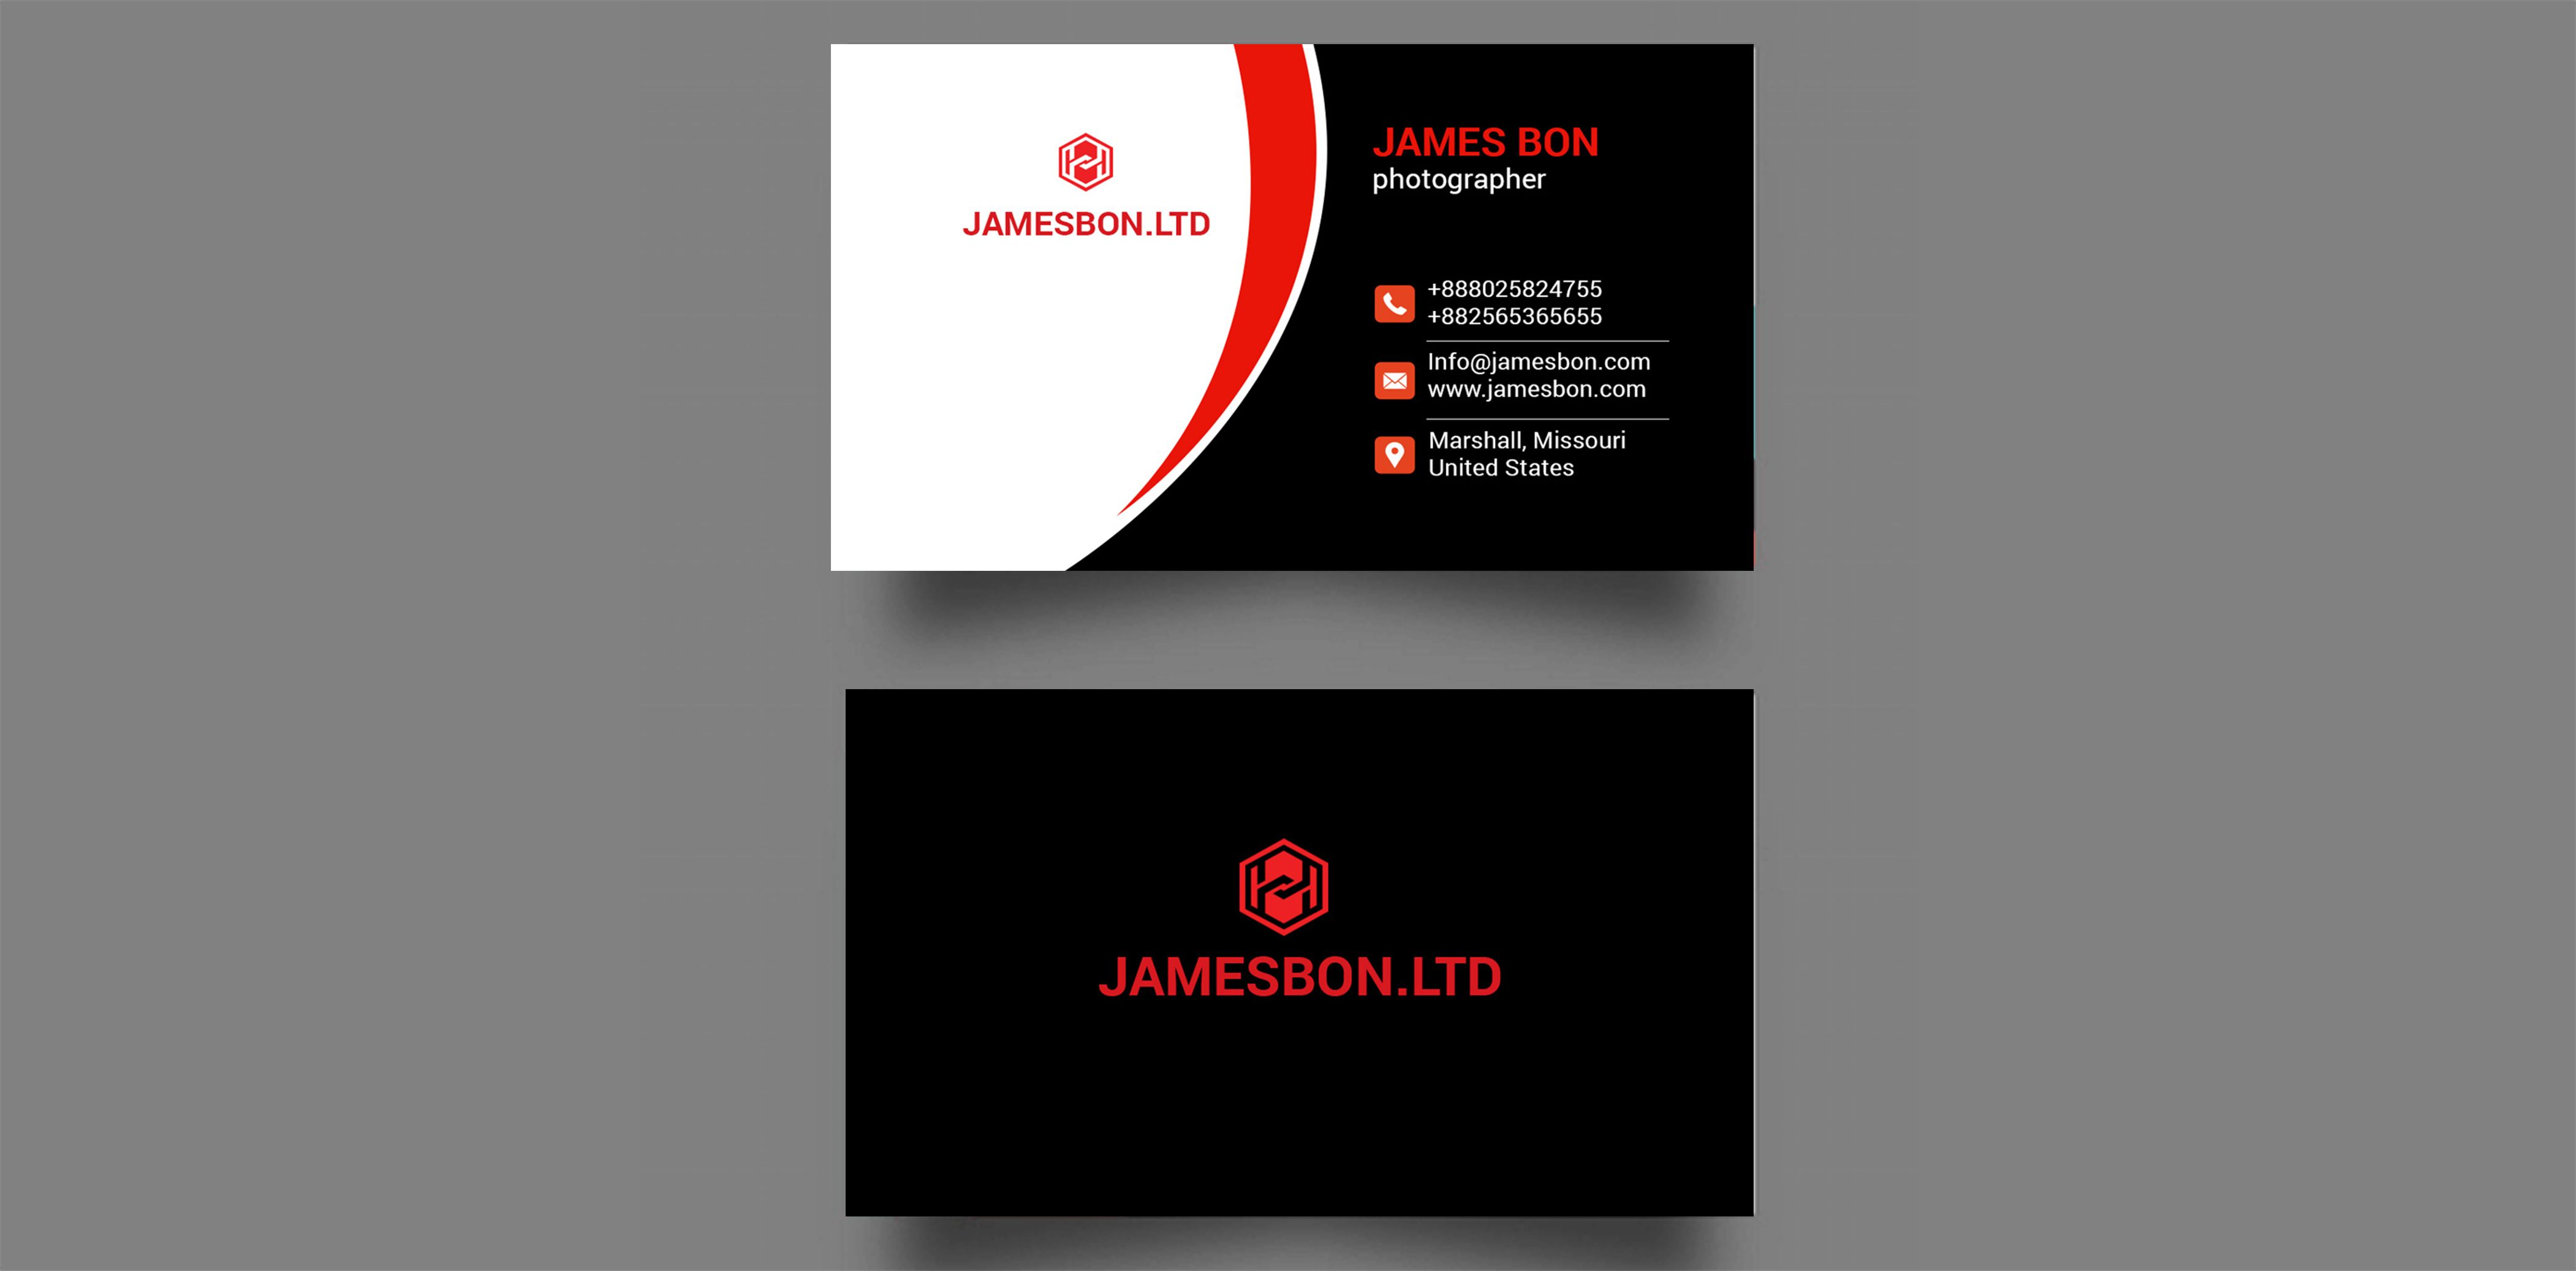 manjil280 i will design unique business cards 200 concepts with